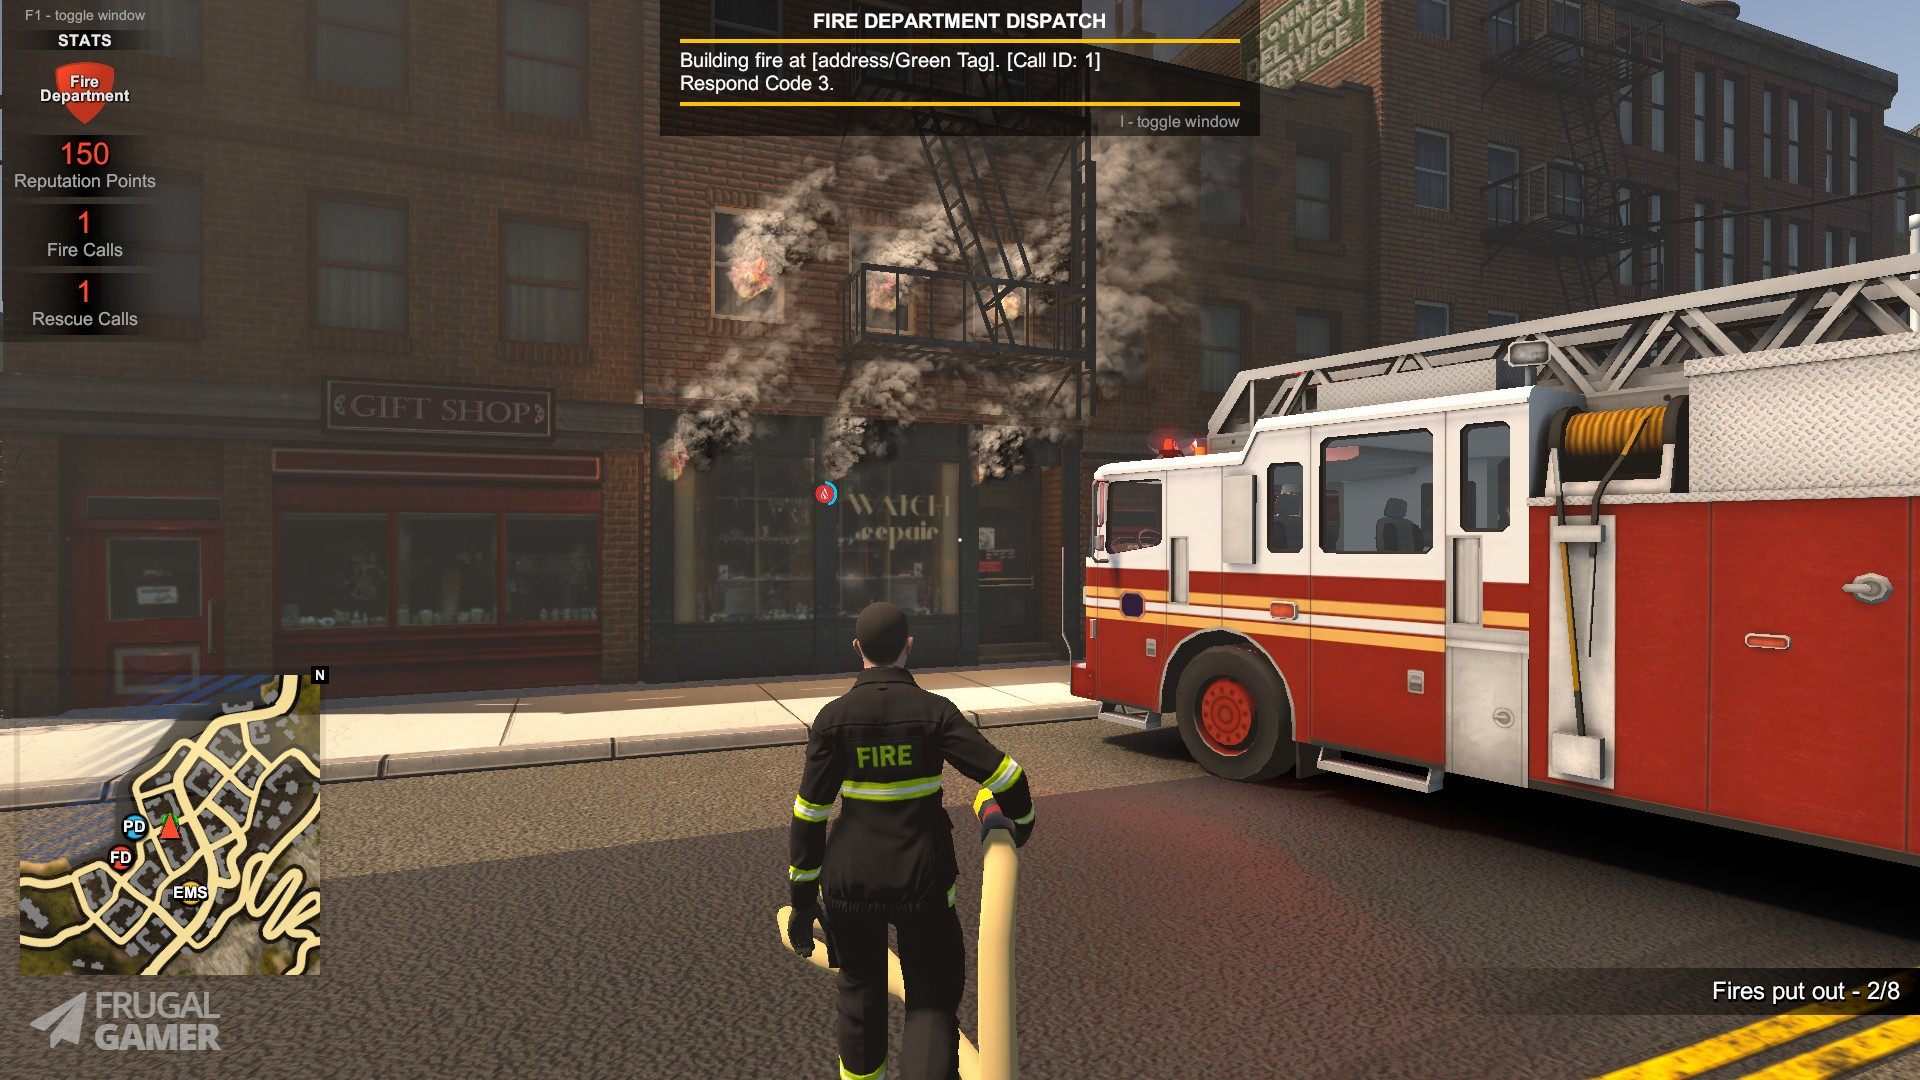 Flashing Lights - Police, Firefighting, Emergency Services Simulator -  Windows PC and Mac - Save 60% on Steam Key